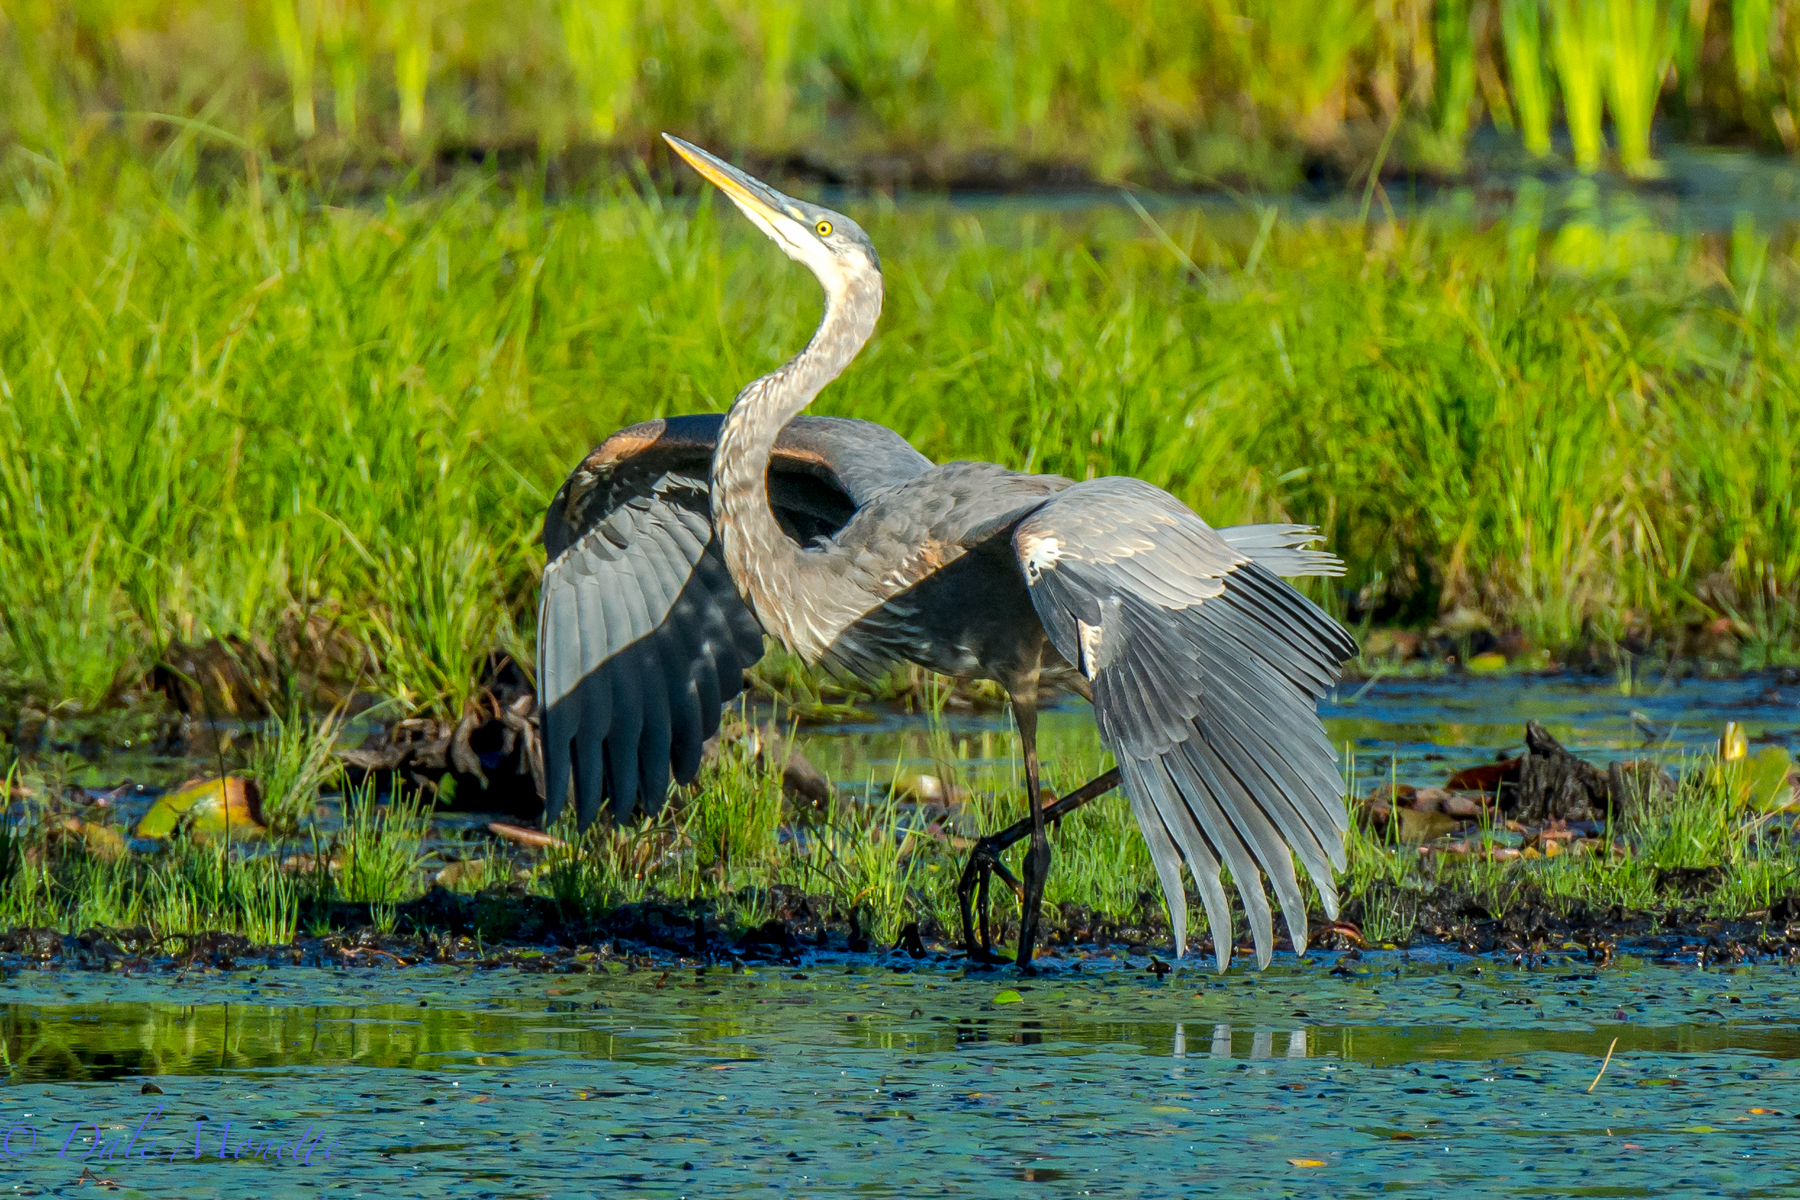 A young great blue heron puffs himself up to look bigger to another heron as he defends his fishing yards.